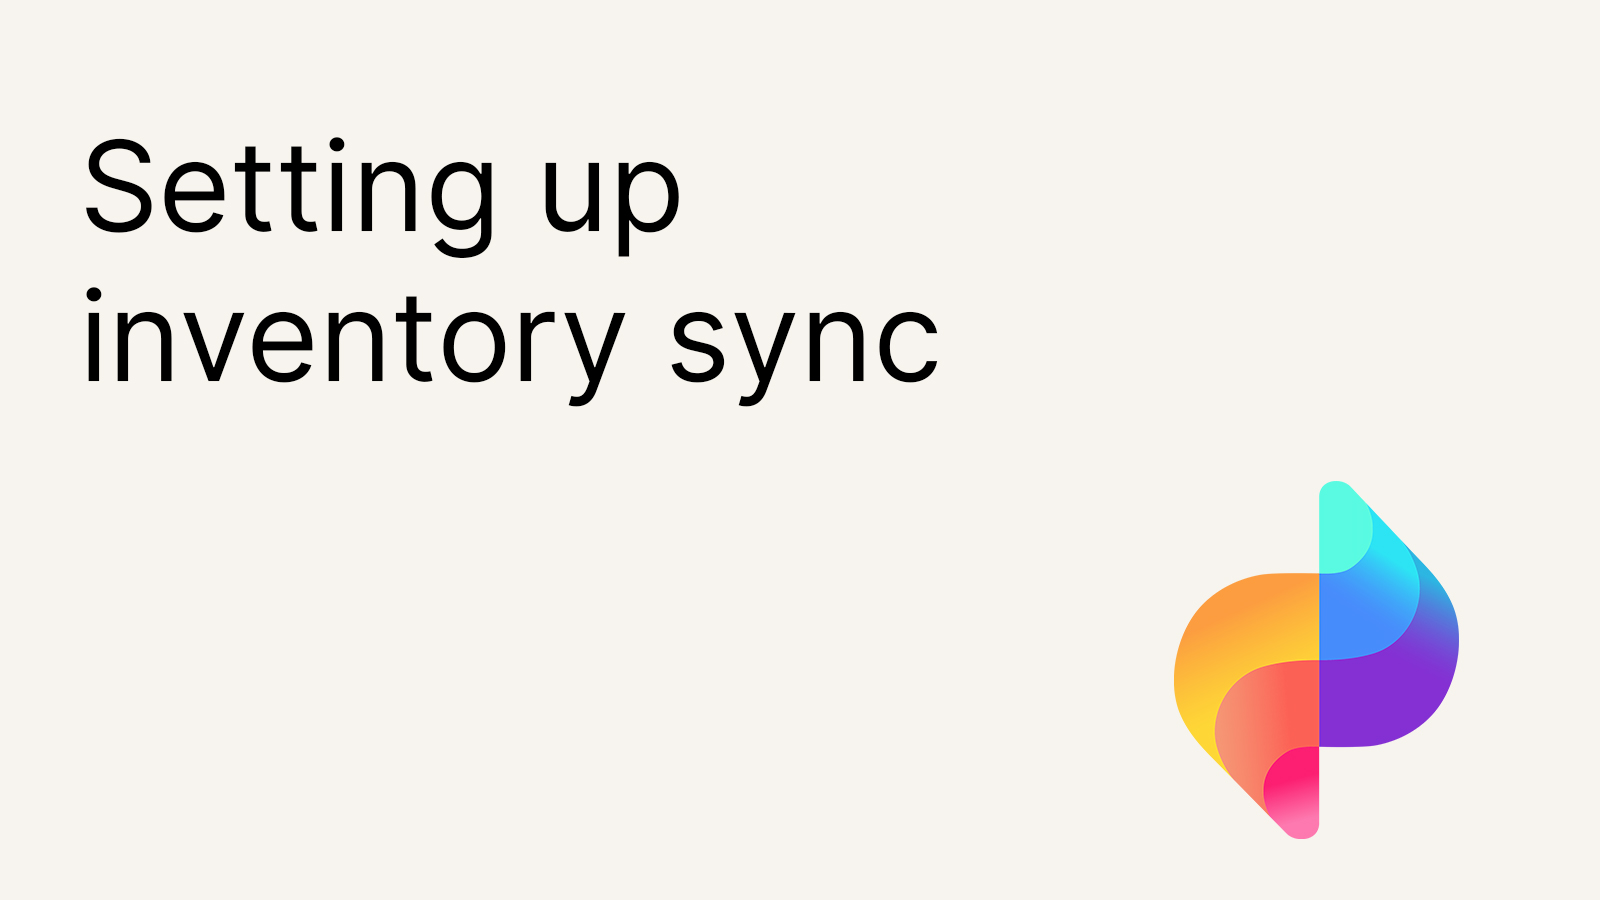 Setting up inventory sync